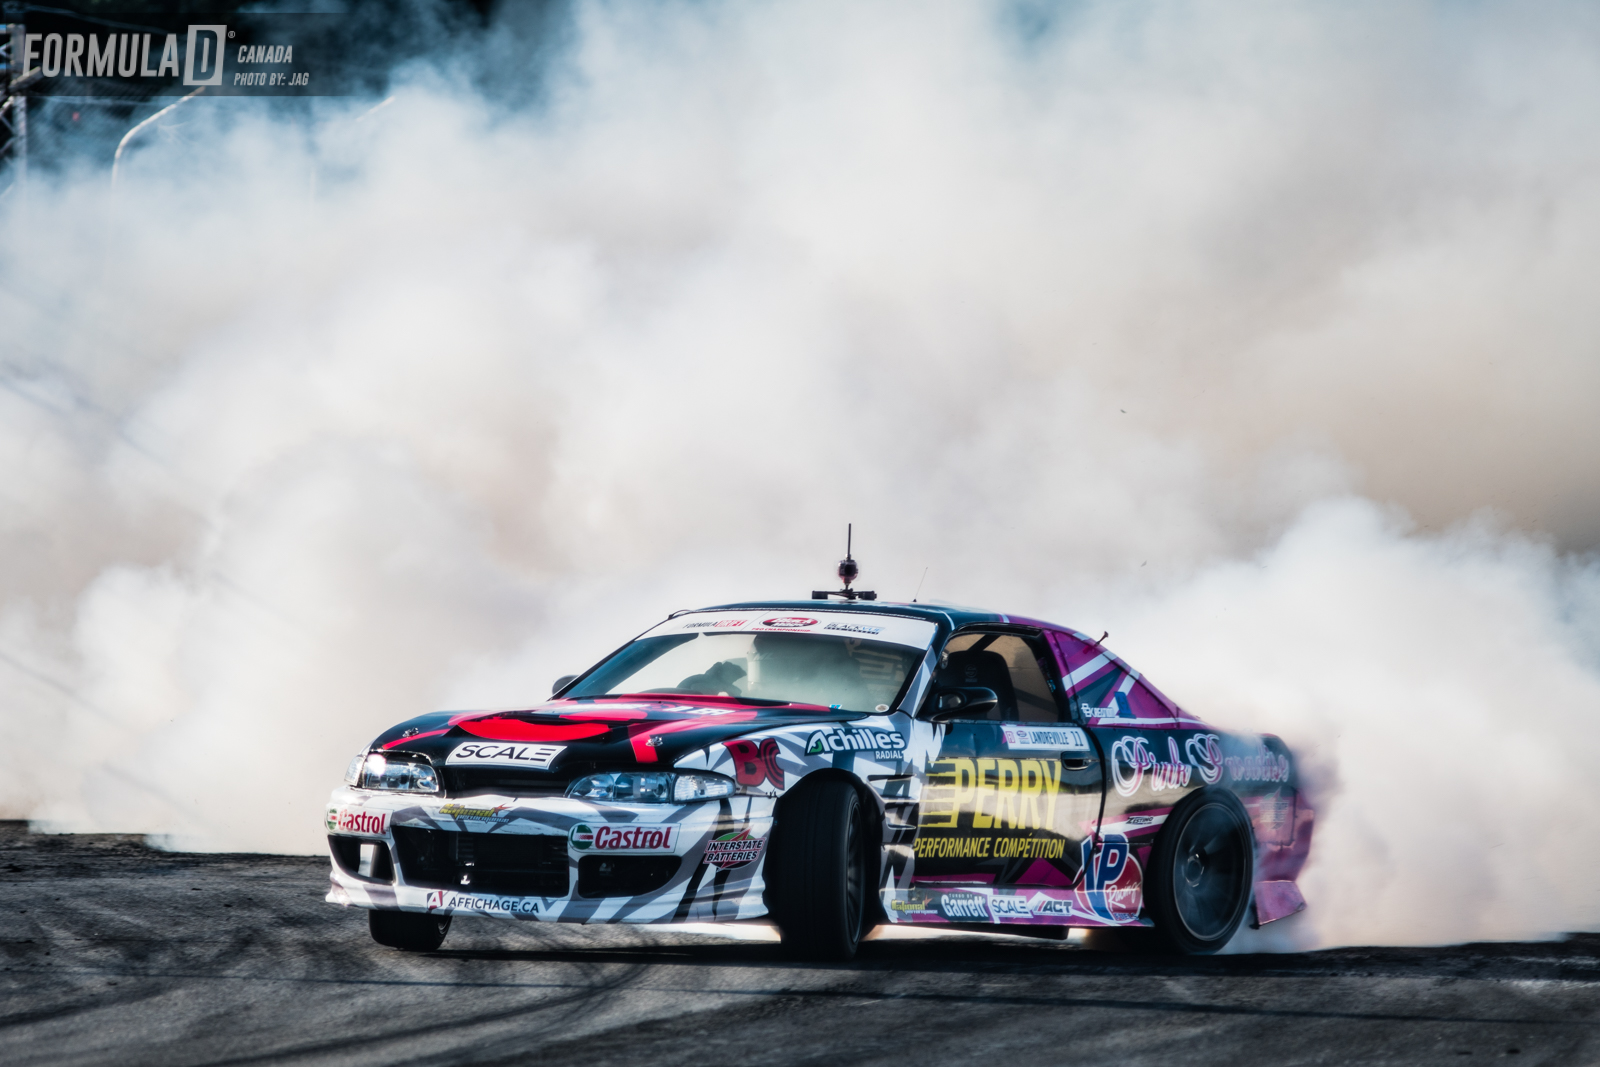 Those Achilles tires sure can smoke!